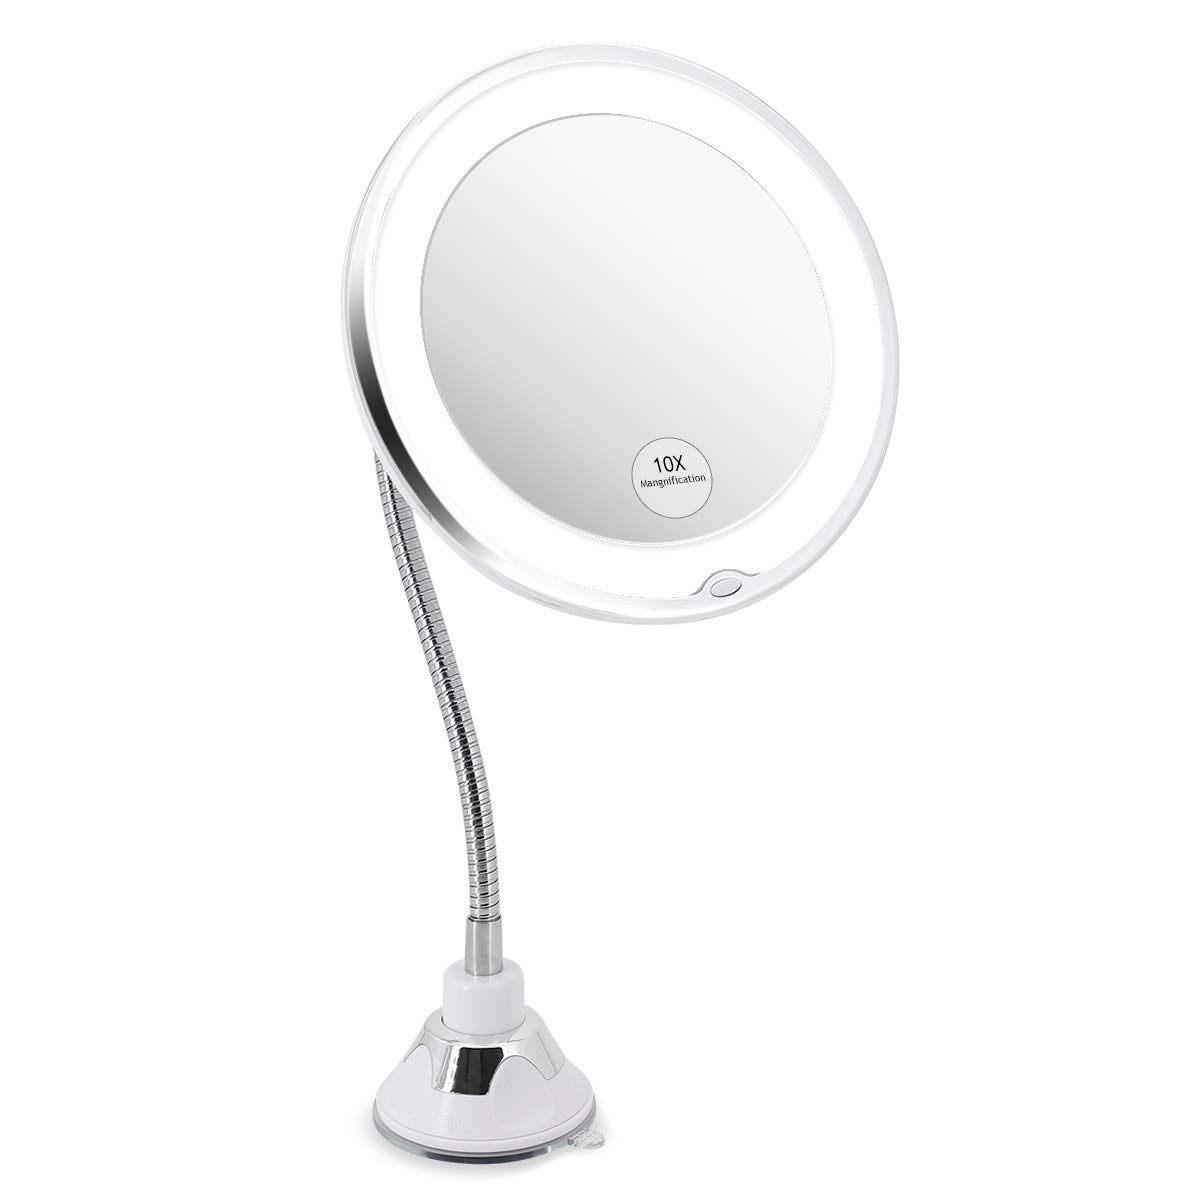 Glam Hobby Led 10X Magnifying Makeup Mirror Lighted Vanity Bathroom Square Mirror with 360 Degree Swivel Rotation, Flexible Gooseneck, and Locking Suction